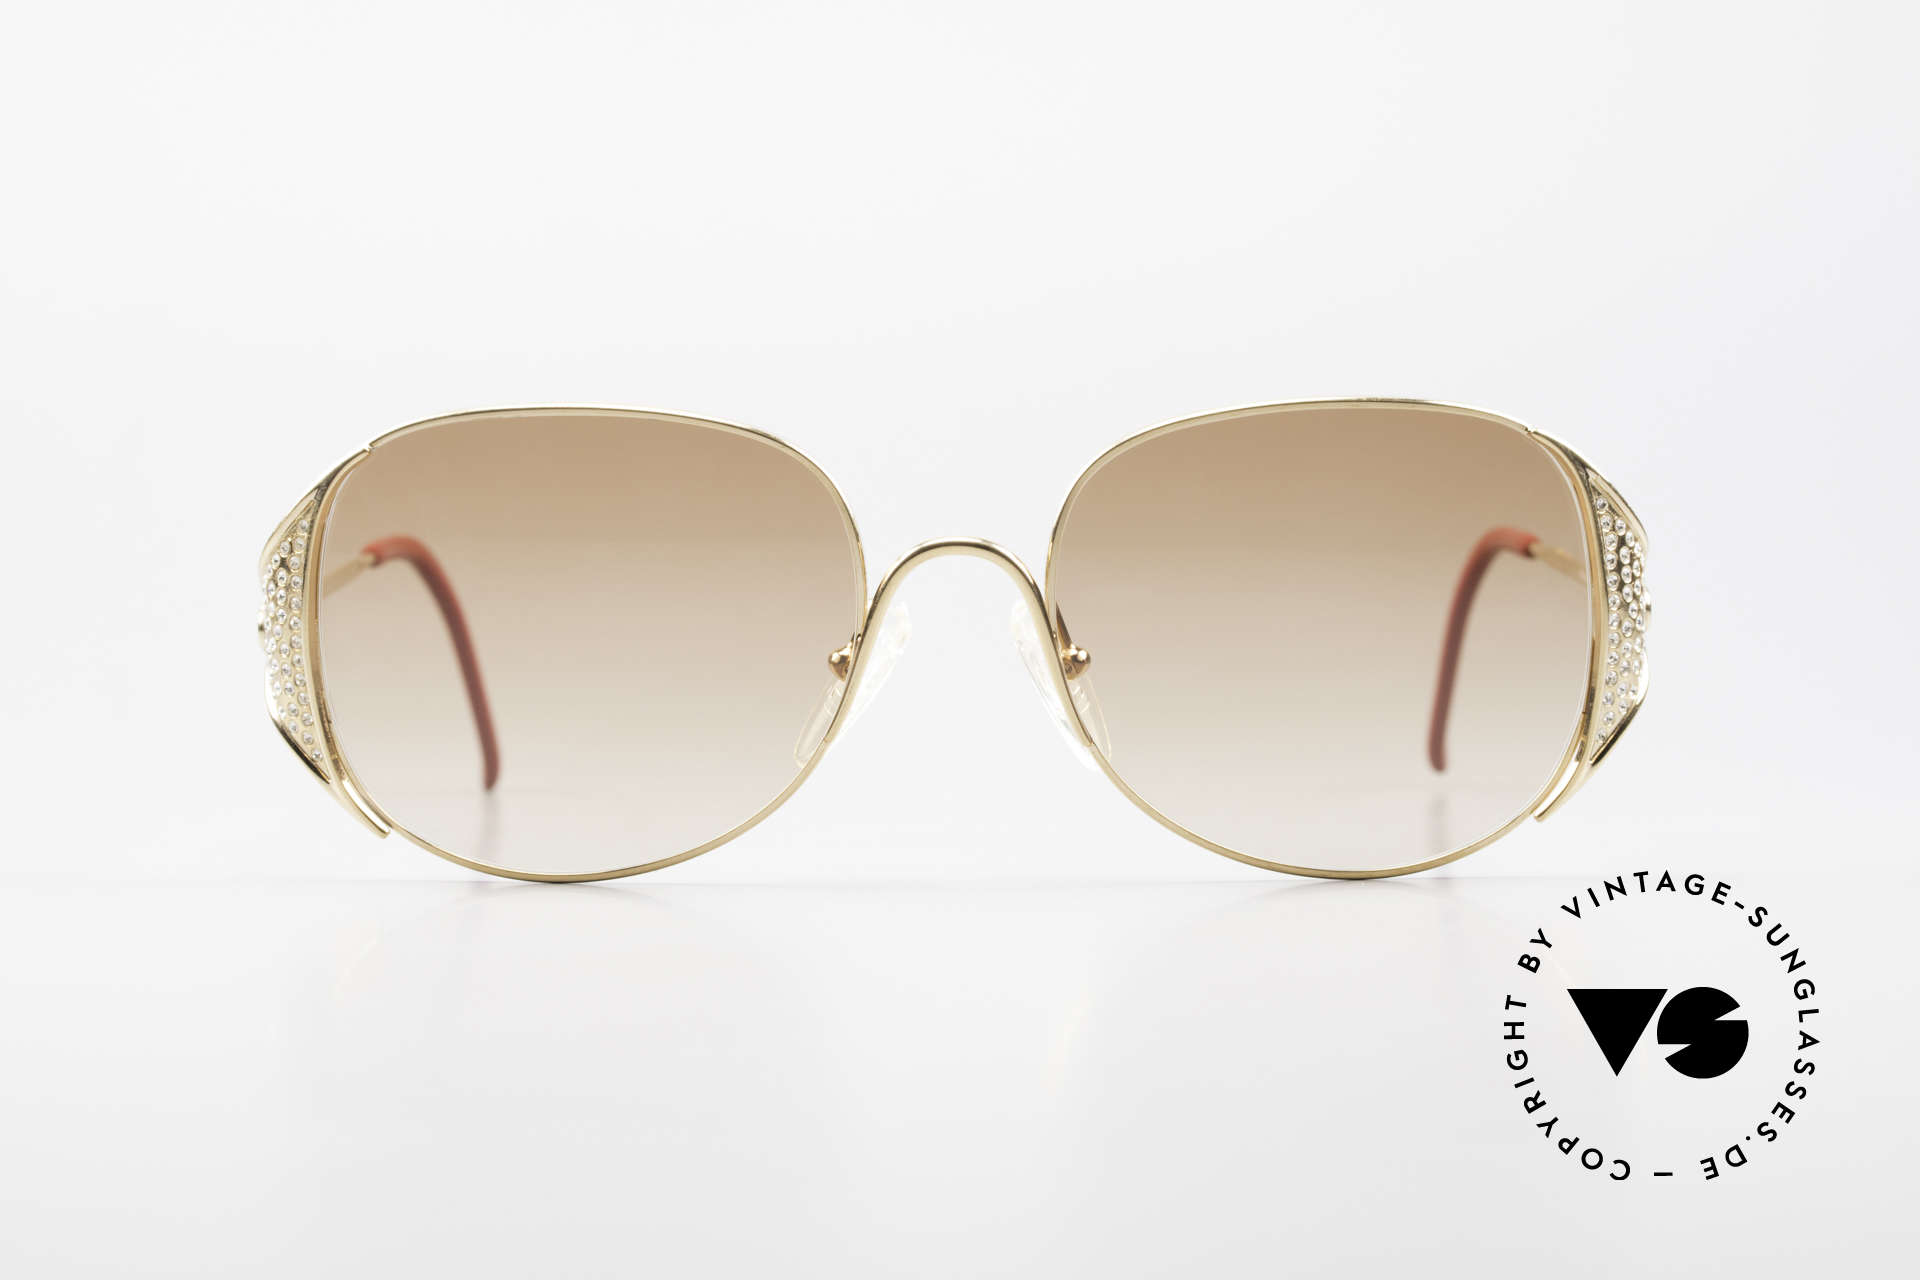 Christian Dior 2362 Ladies Sunglasses Rhinestone, GOLD-plated frame with rich rhinestones-appliqué, Made for Women